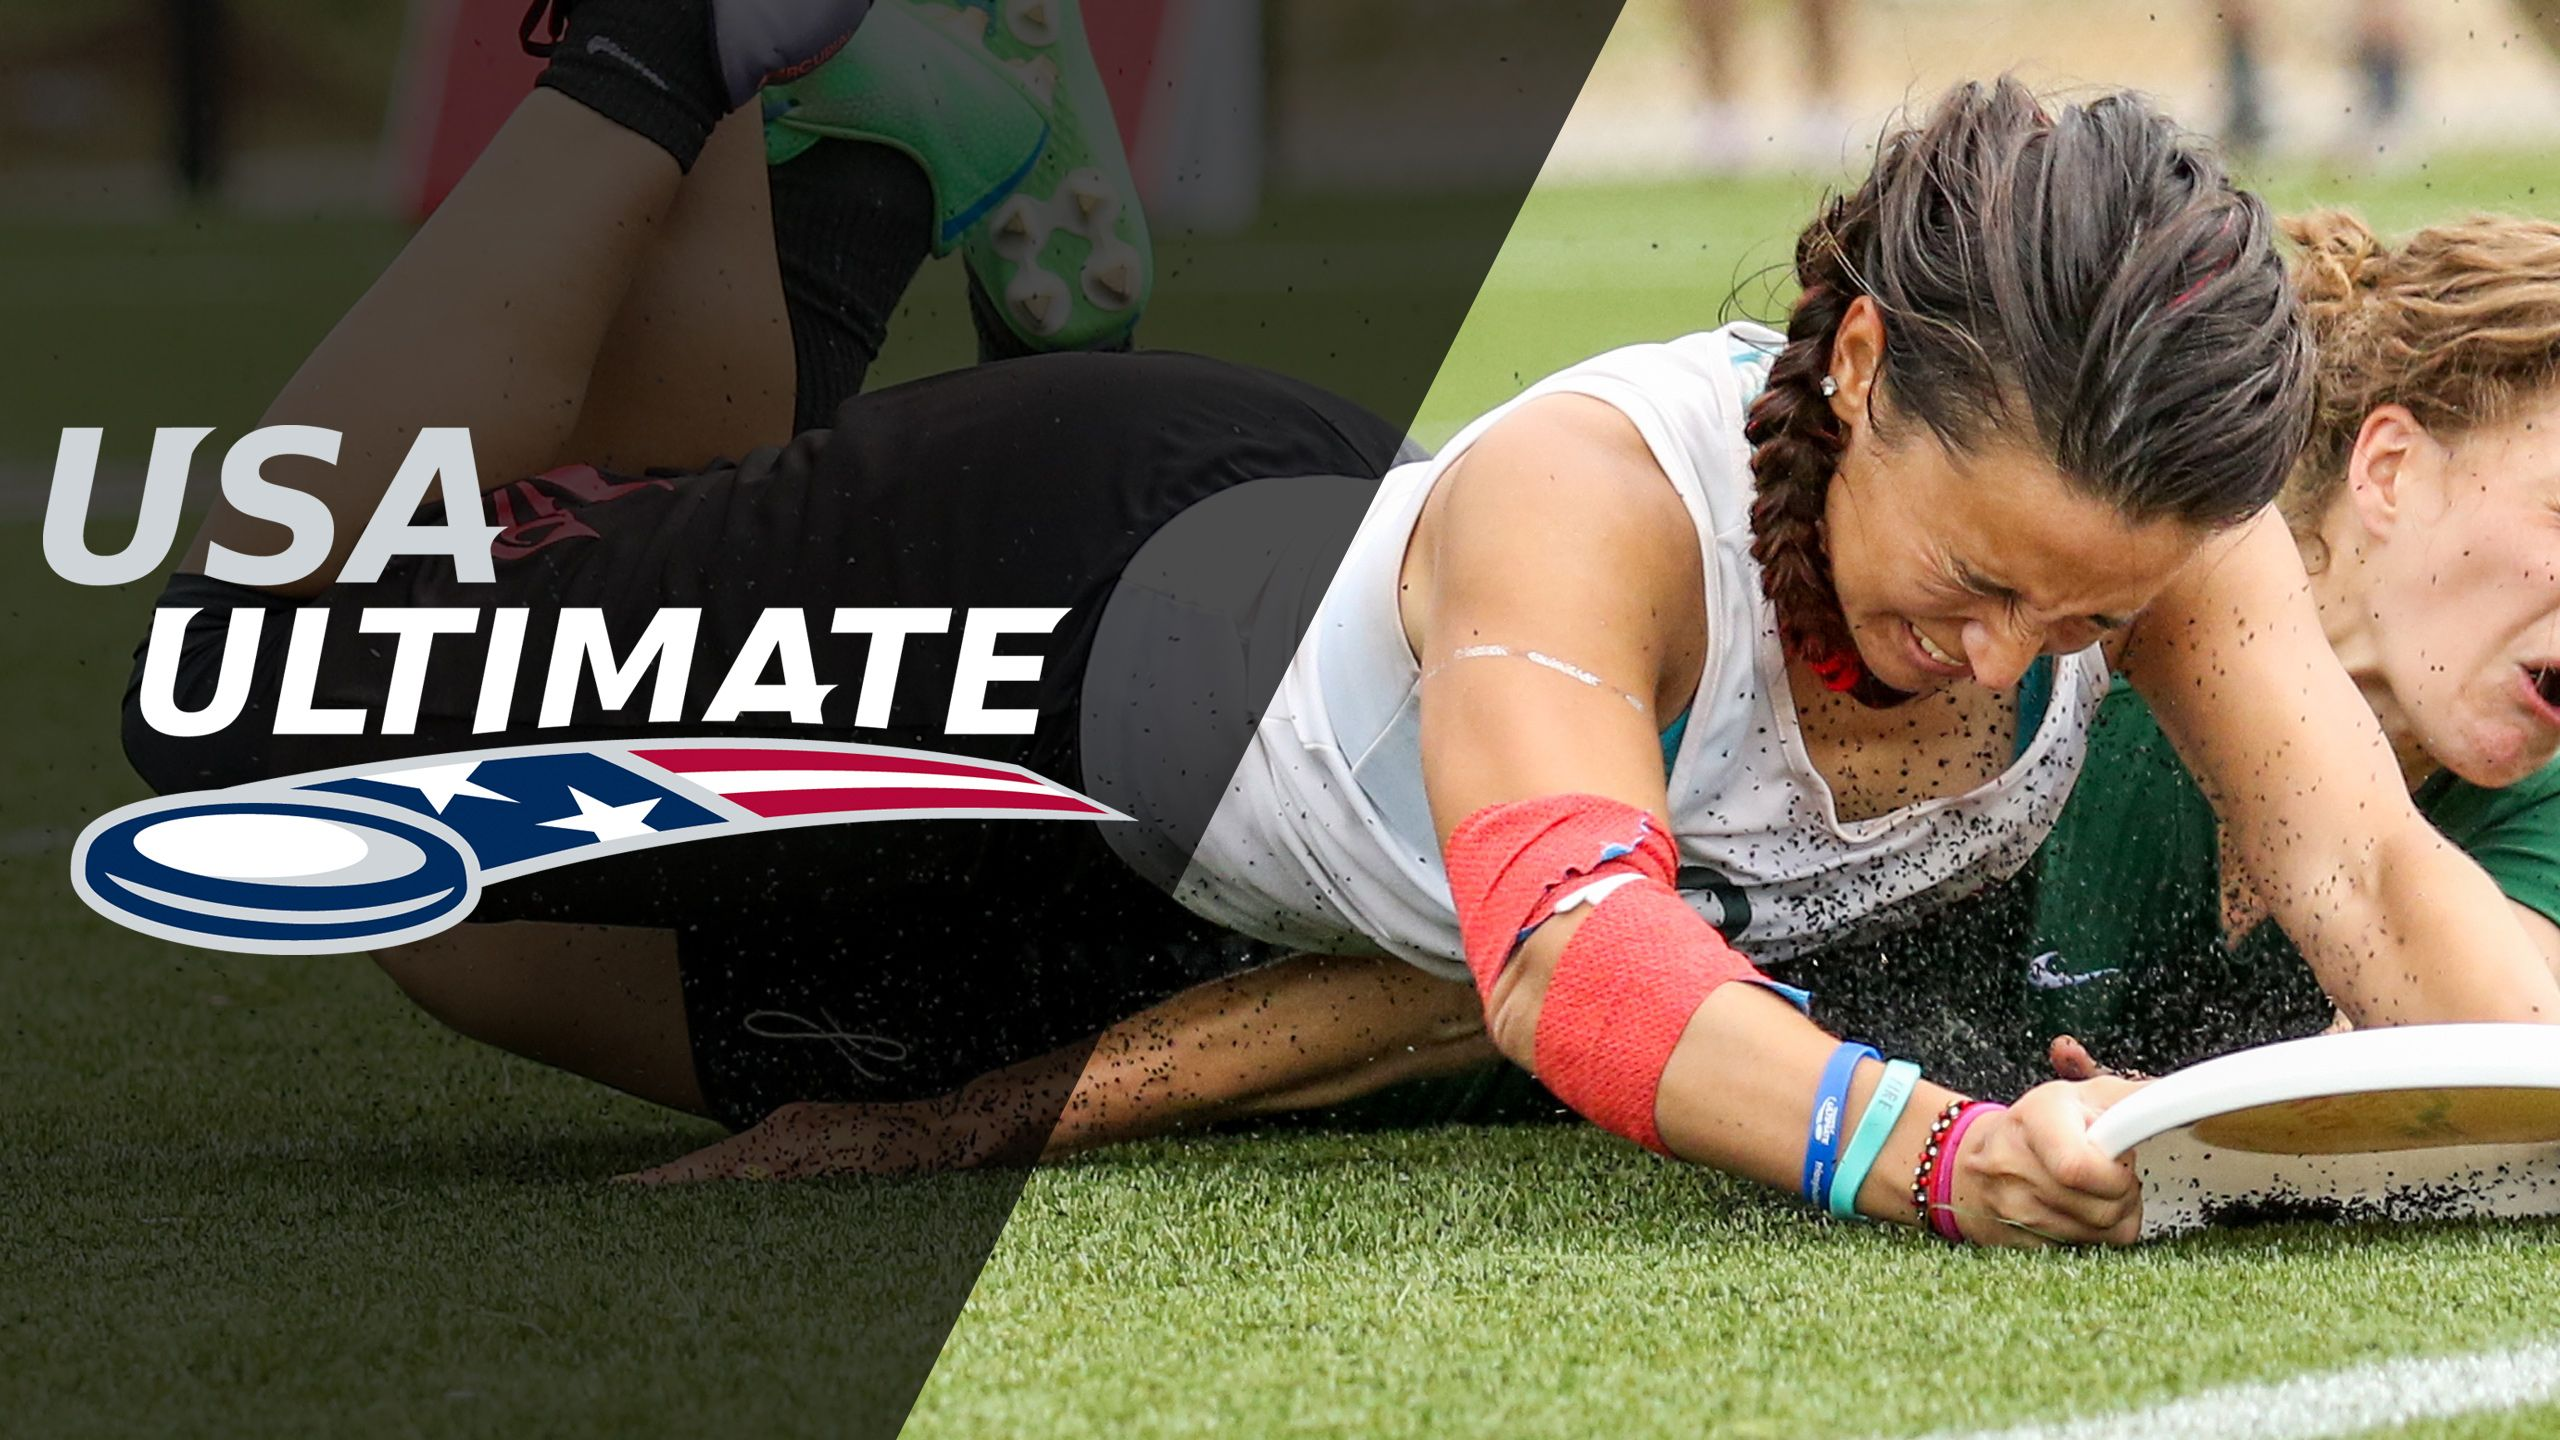 USA Ultimate College Championships (Women's Semifinal #2)